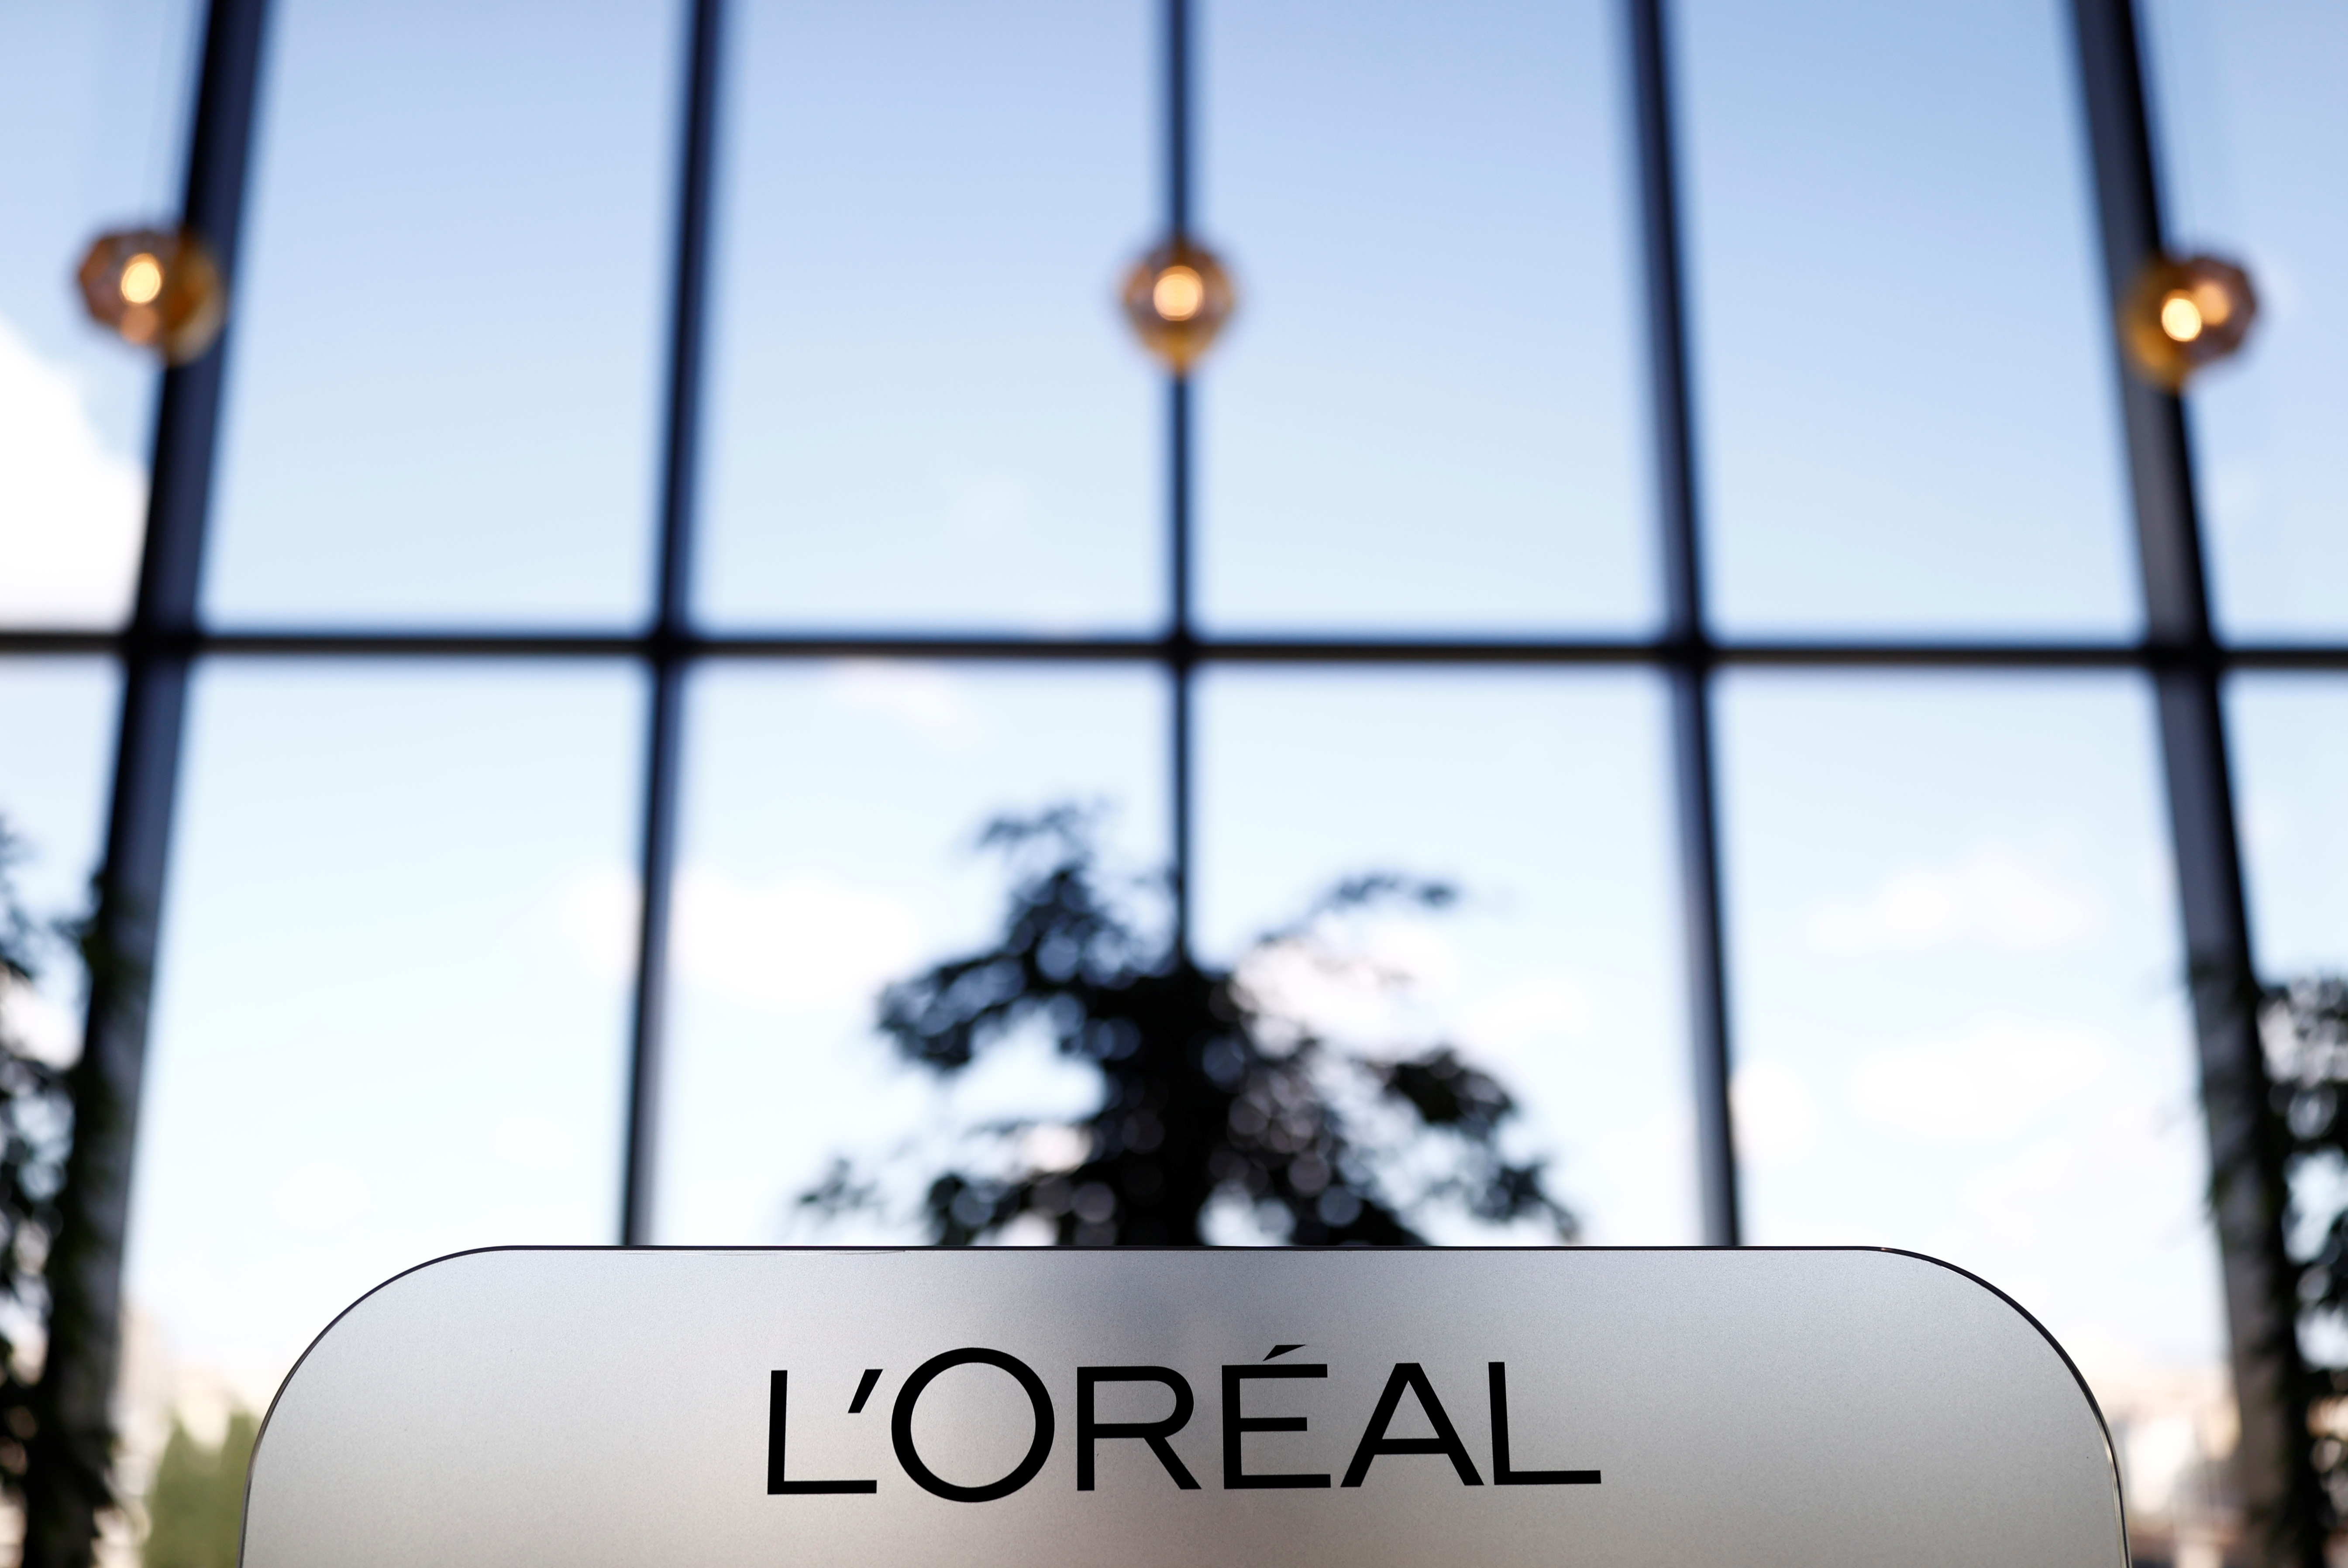 A L'Oreal logo is seen at the company's offices in Levallois-Perret, near Paris, France, May 7, 2021. REUTERS/Christian Hartmann